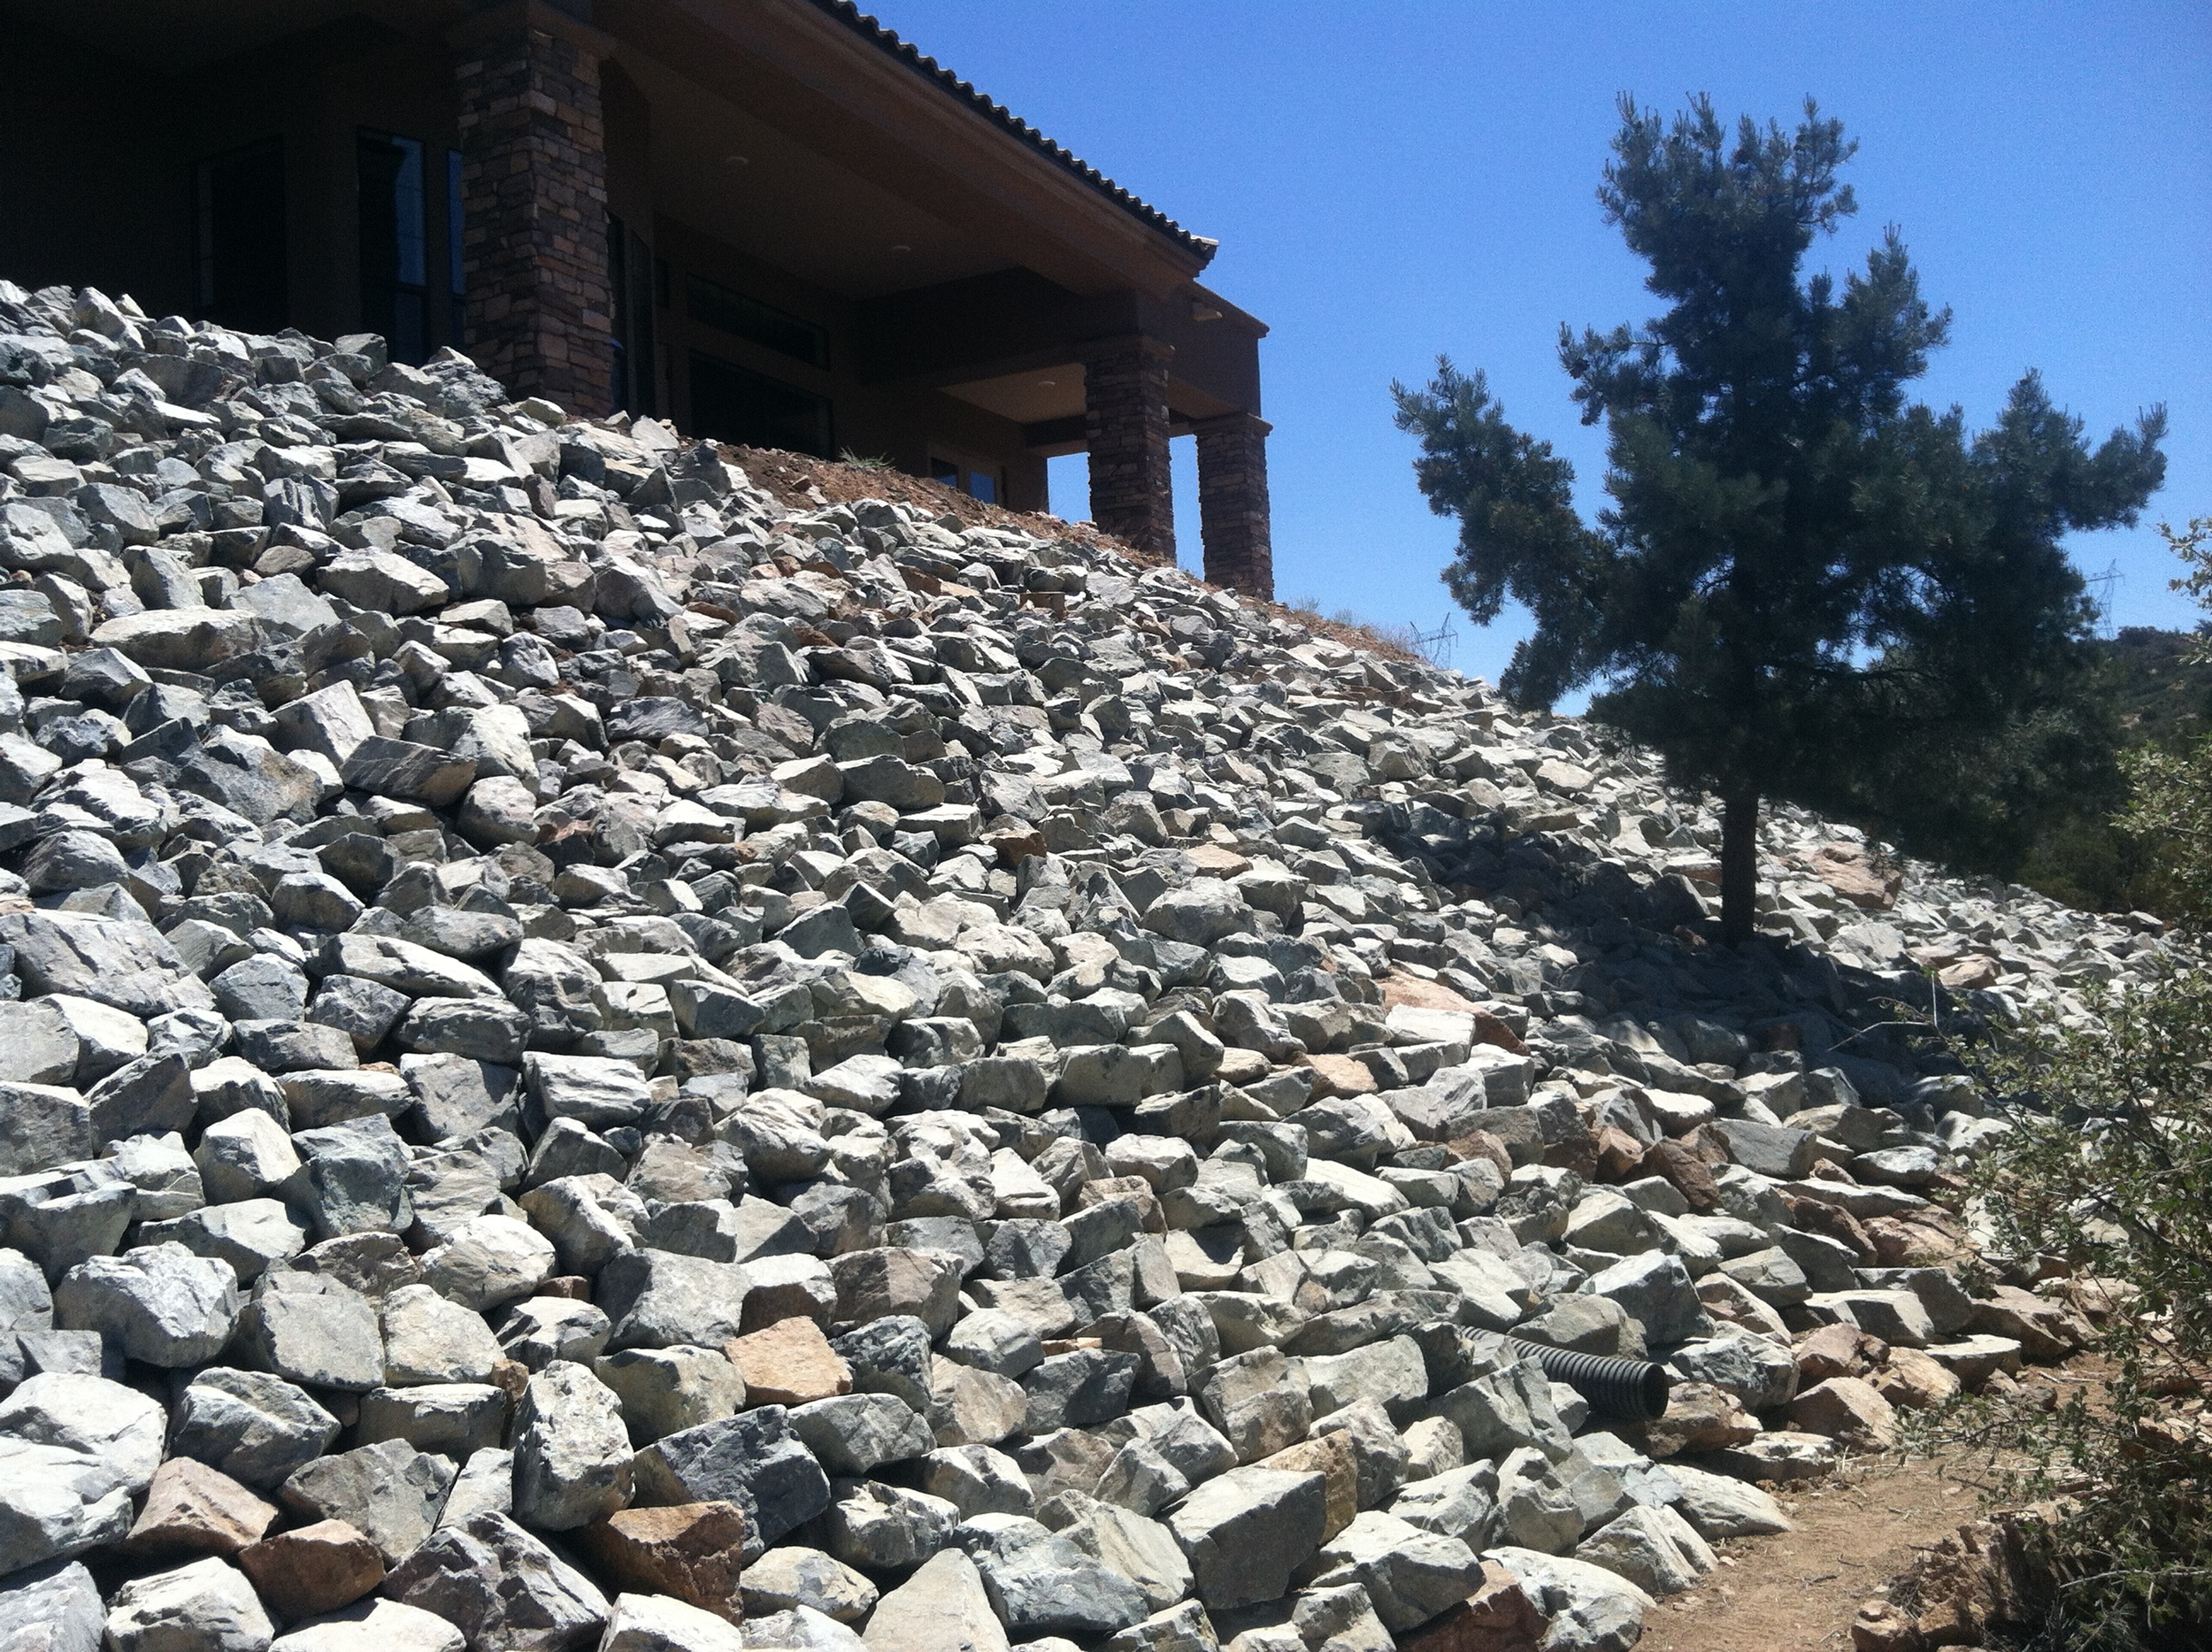 Large rip-rap project.  Looks great and will keep the hillside from eroding away.